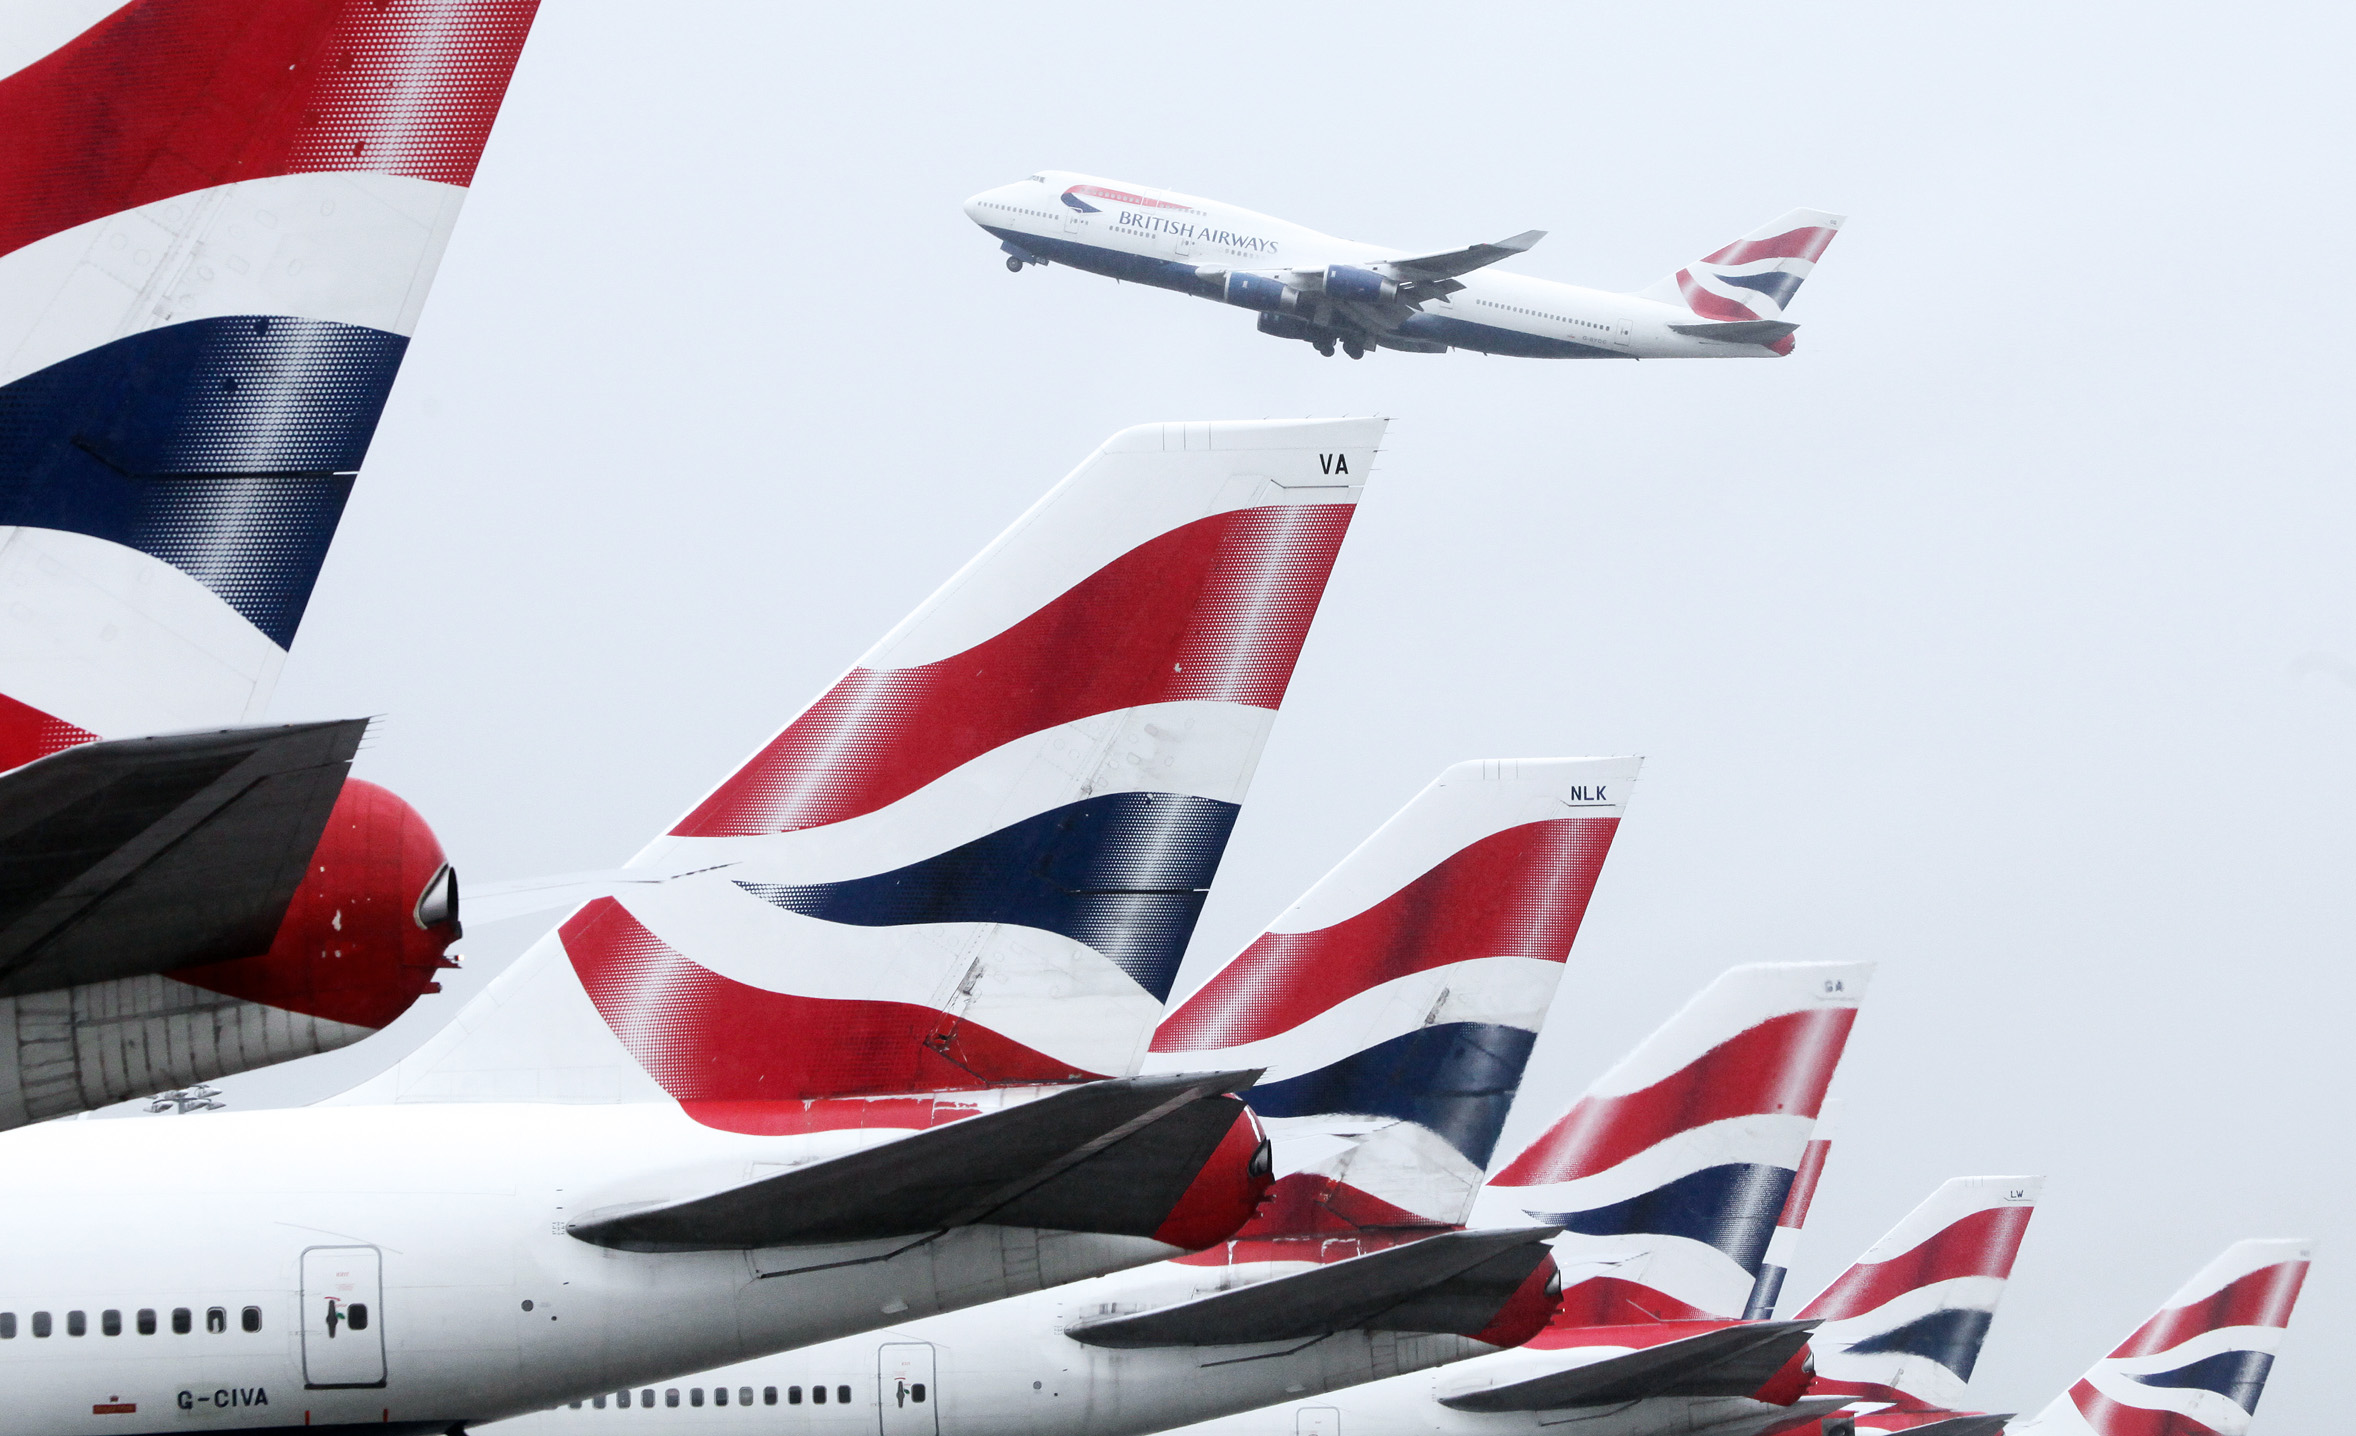 BA's cabin refresh - what will it mean for passengers?